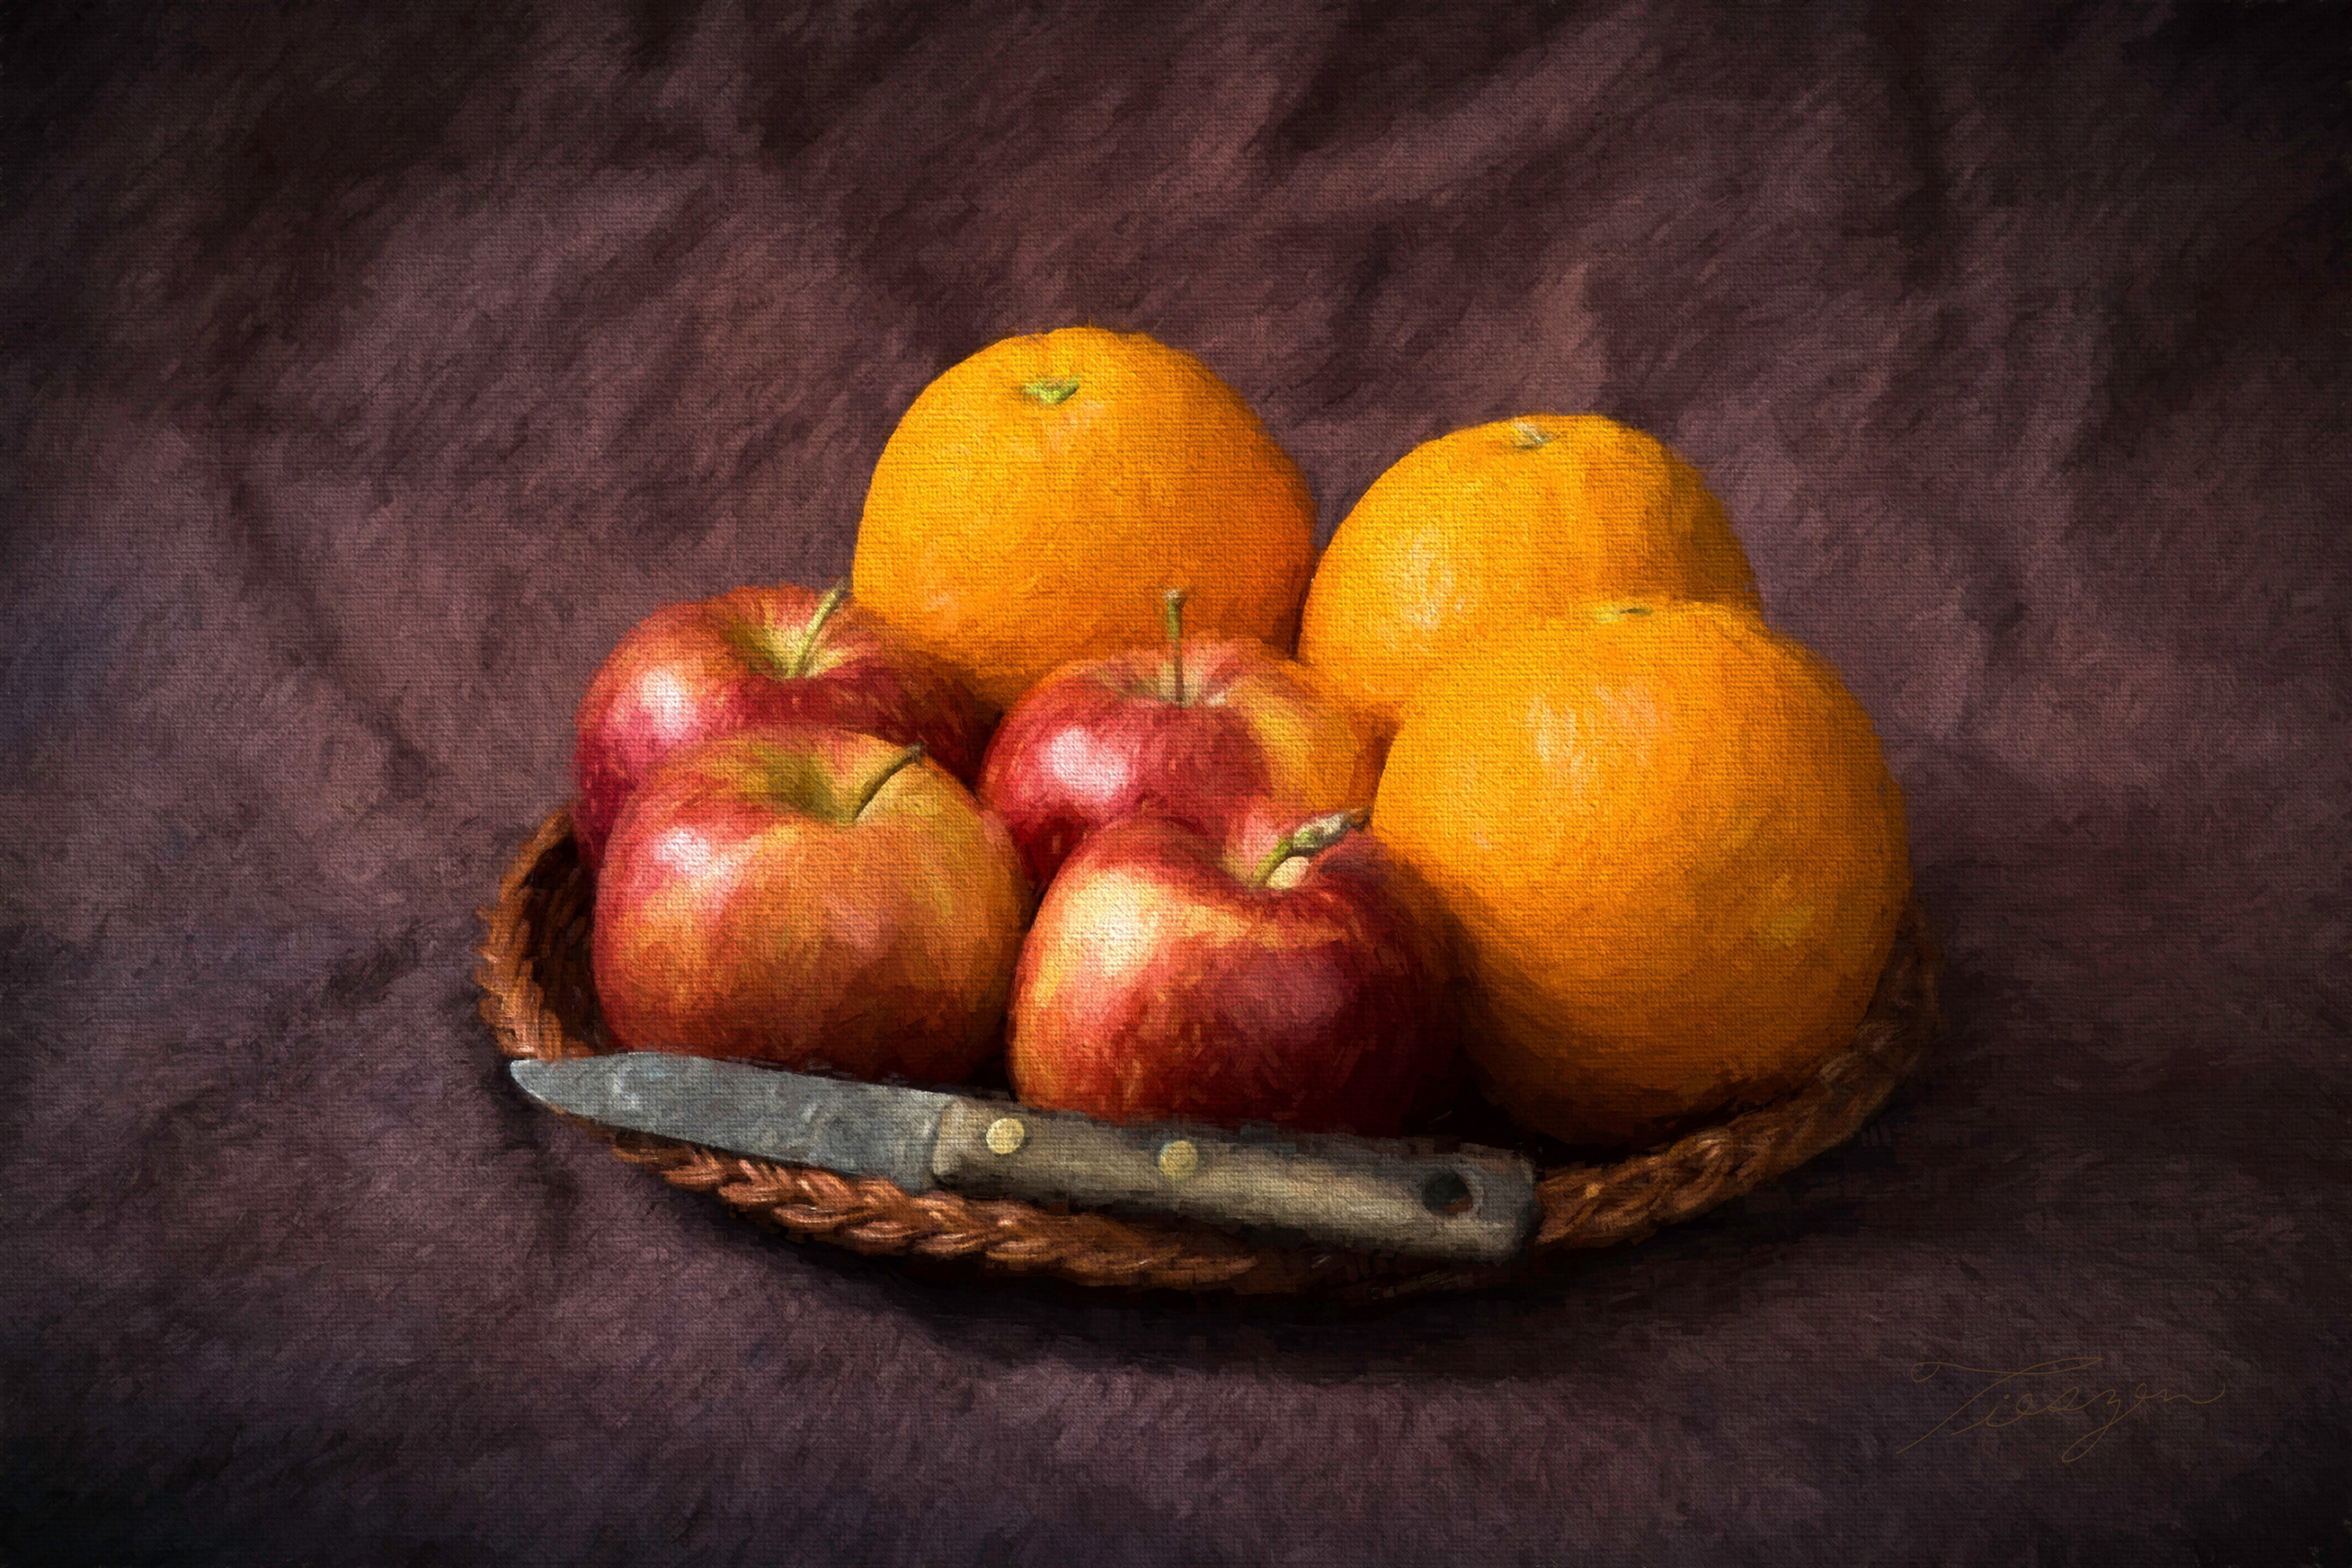 Apples_orange_lm8kor